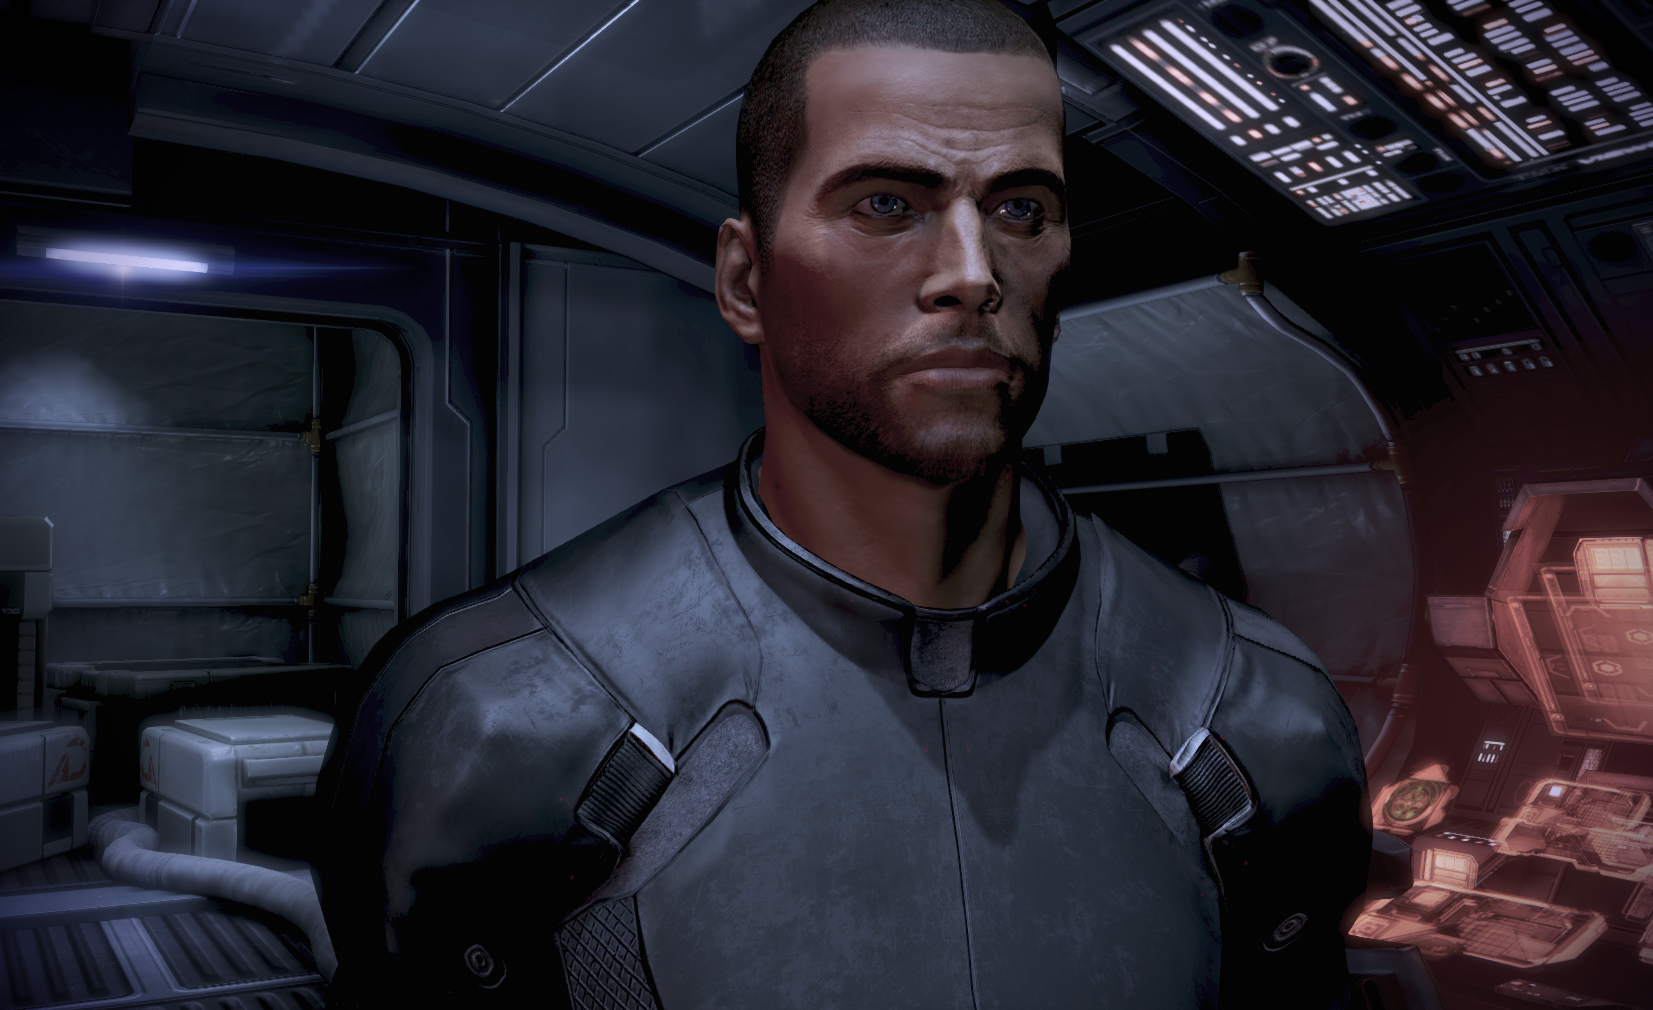 Ark Mod -- New Casual Outfit at Mass Effect 3 Nexus - Mods